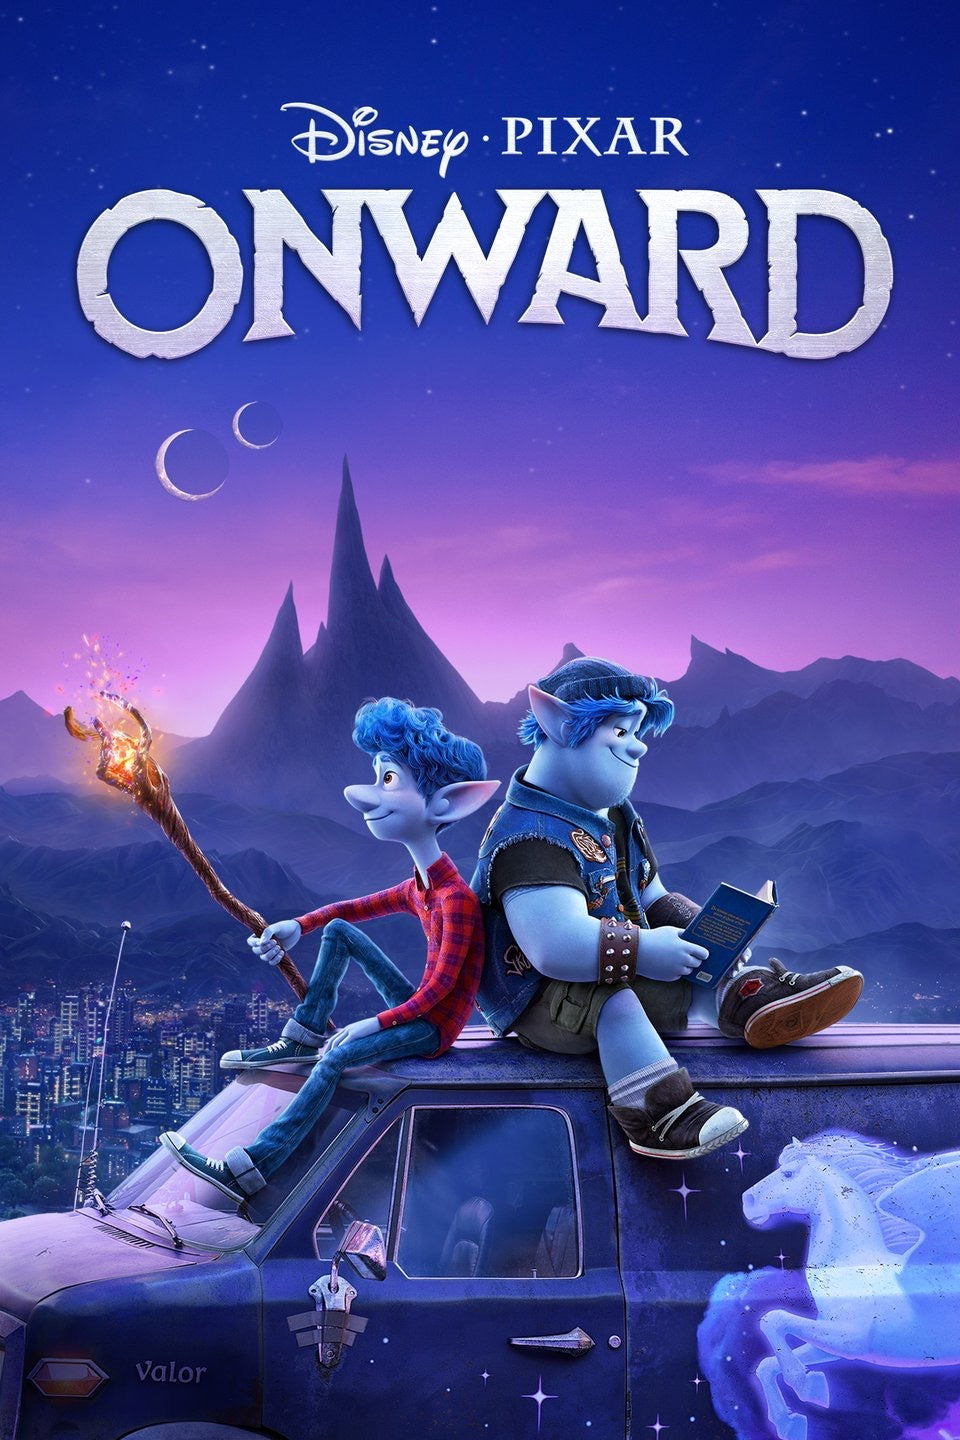 Onward (2020) Vudu or Movies Anywhere HD redemption only